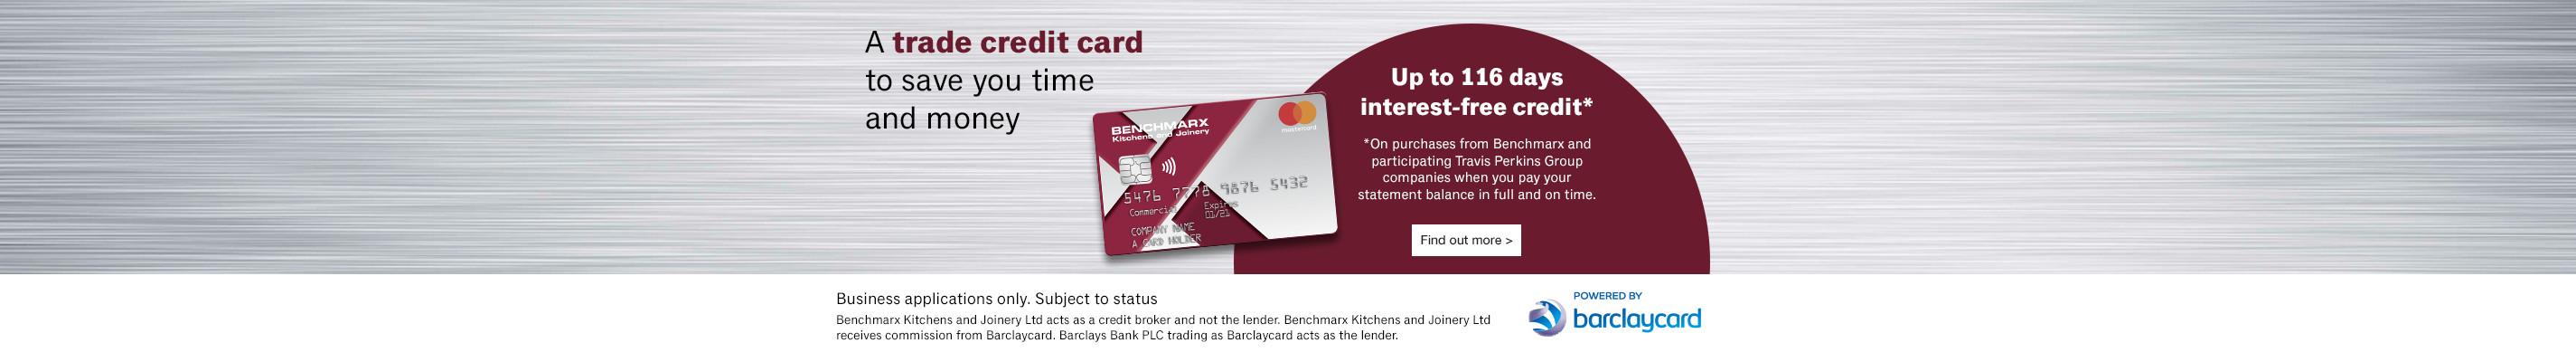 Benchmarx Trade Credit Card